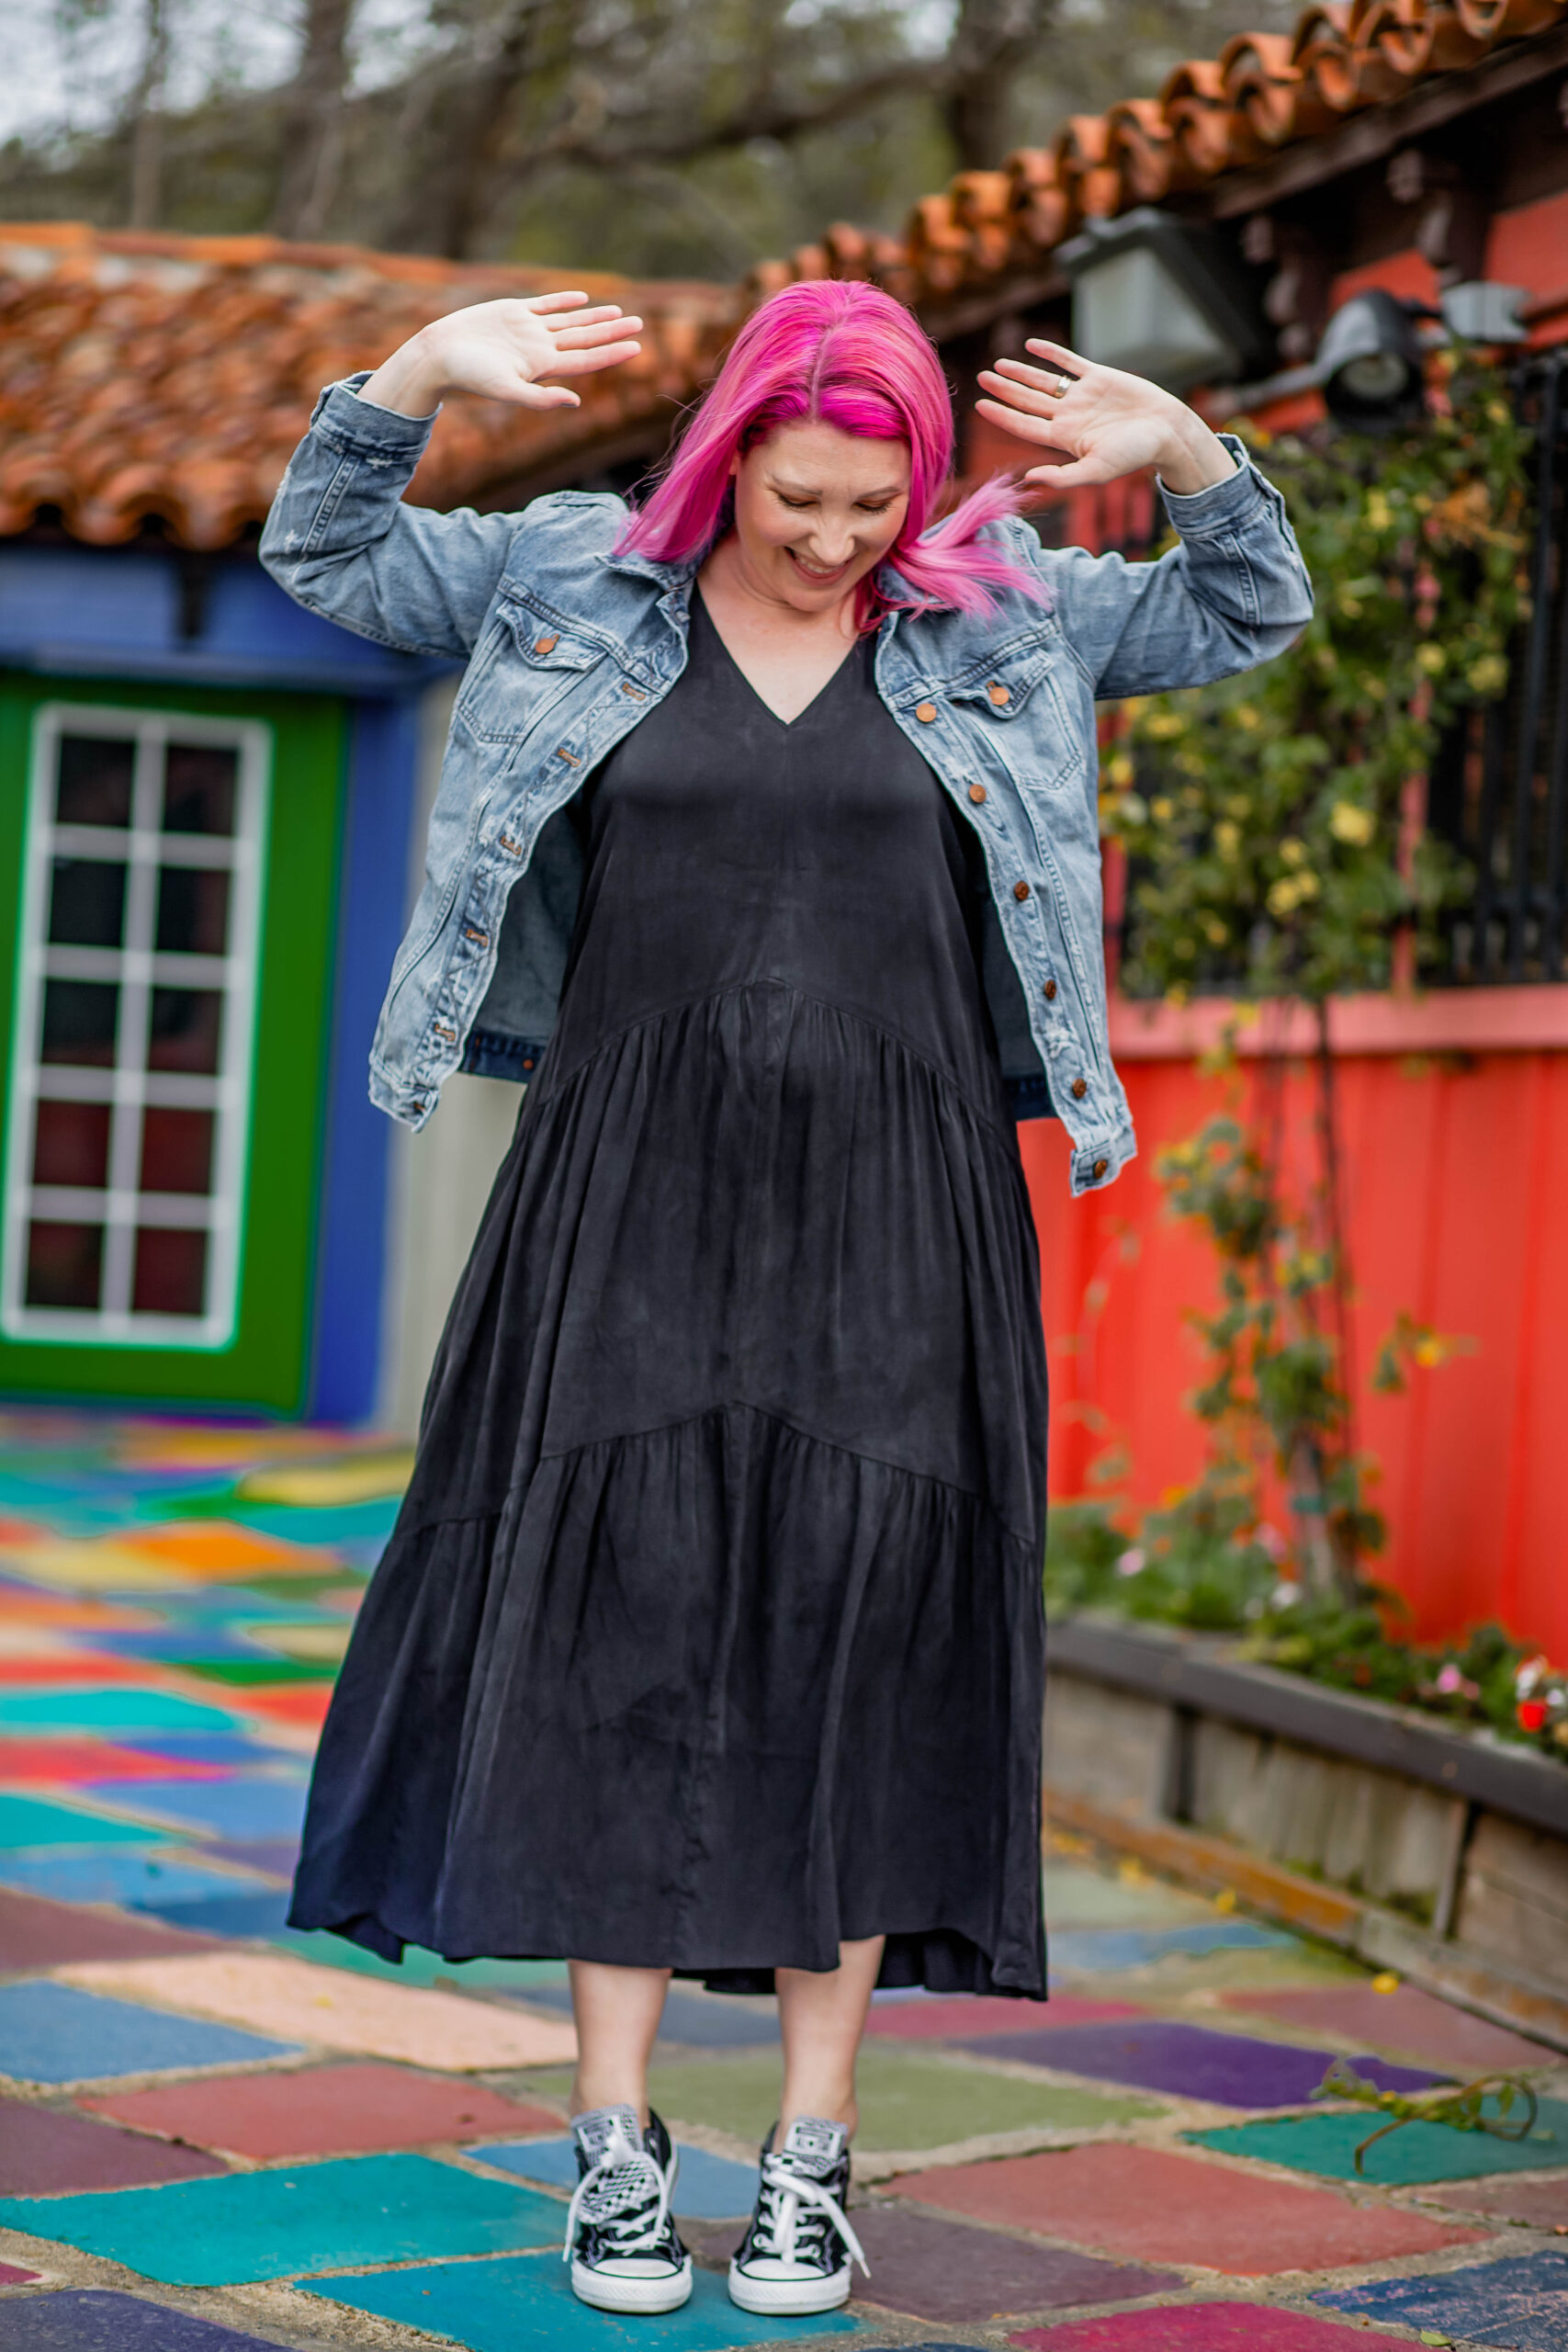 Looking for ways to style a black maxi dress? This jean jacket and converse outfit is a great casual outfit idea!